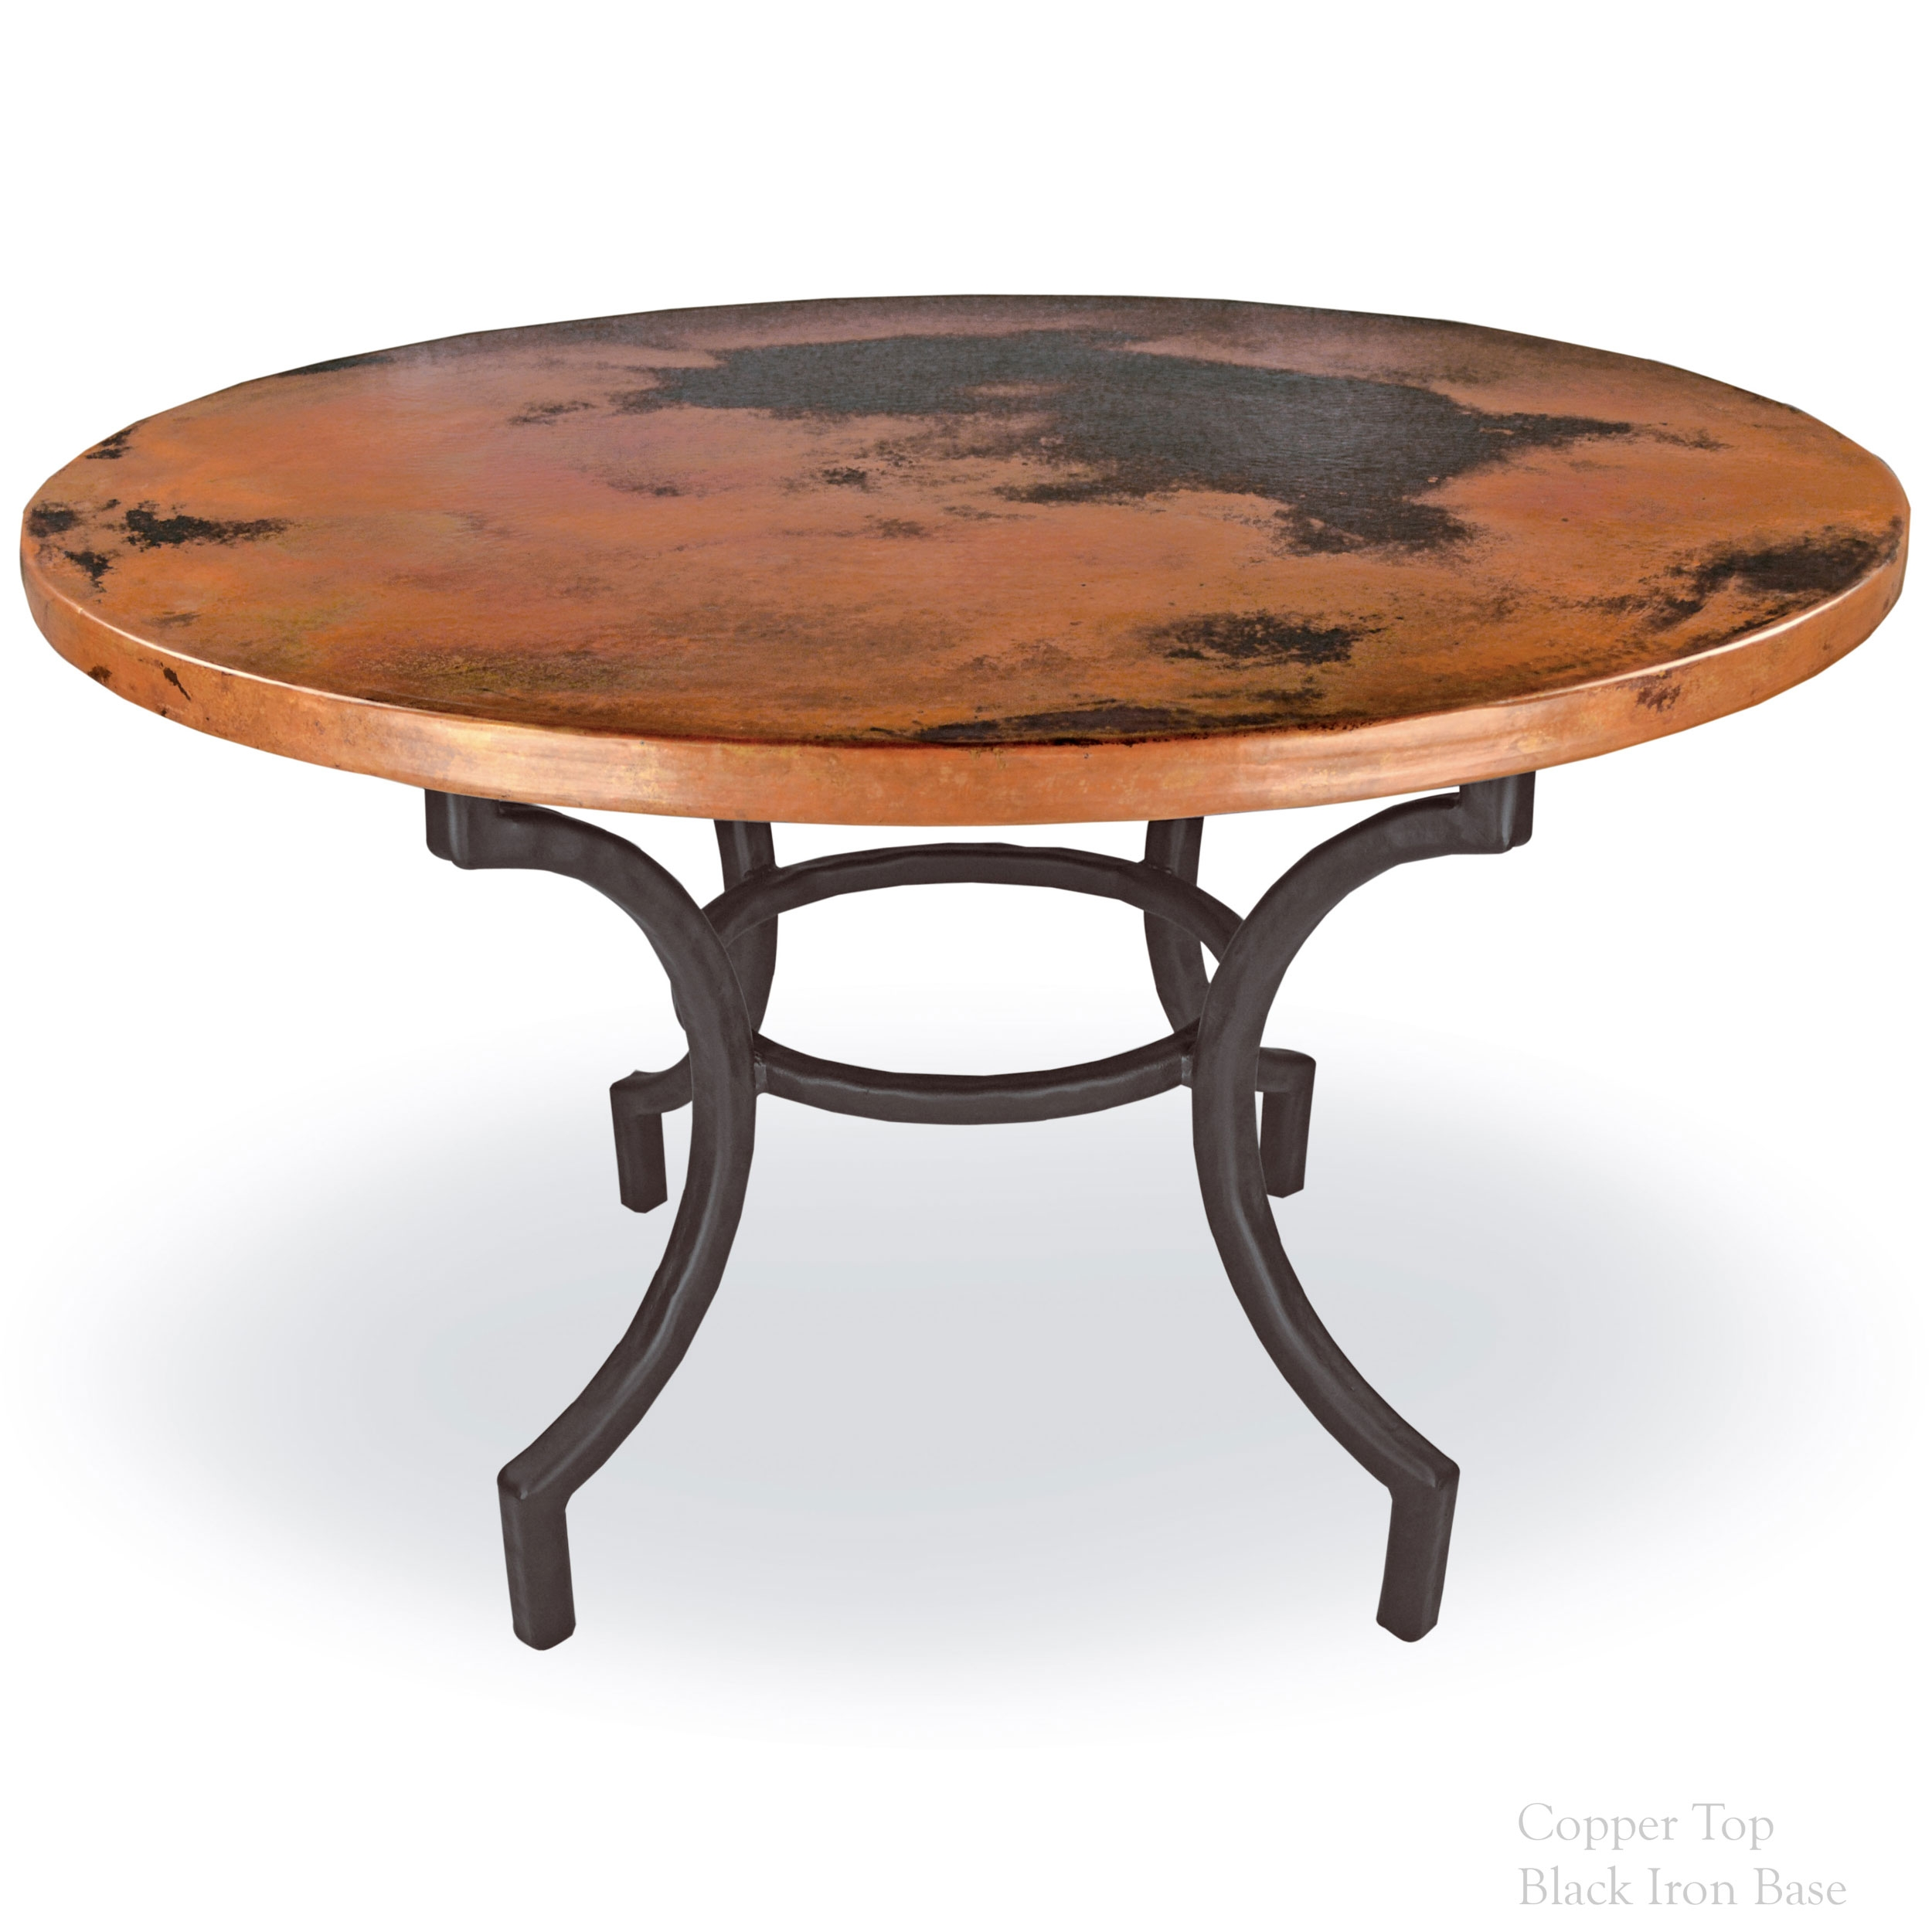 Pictured Here Is The Corinthian Dining Table With 48inch Table Top And Hand Crafted Wrought Iron